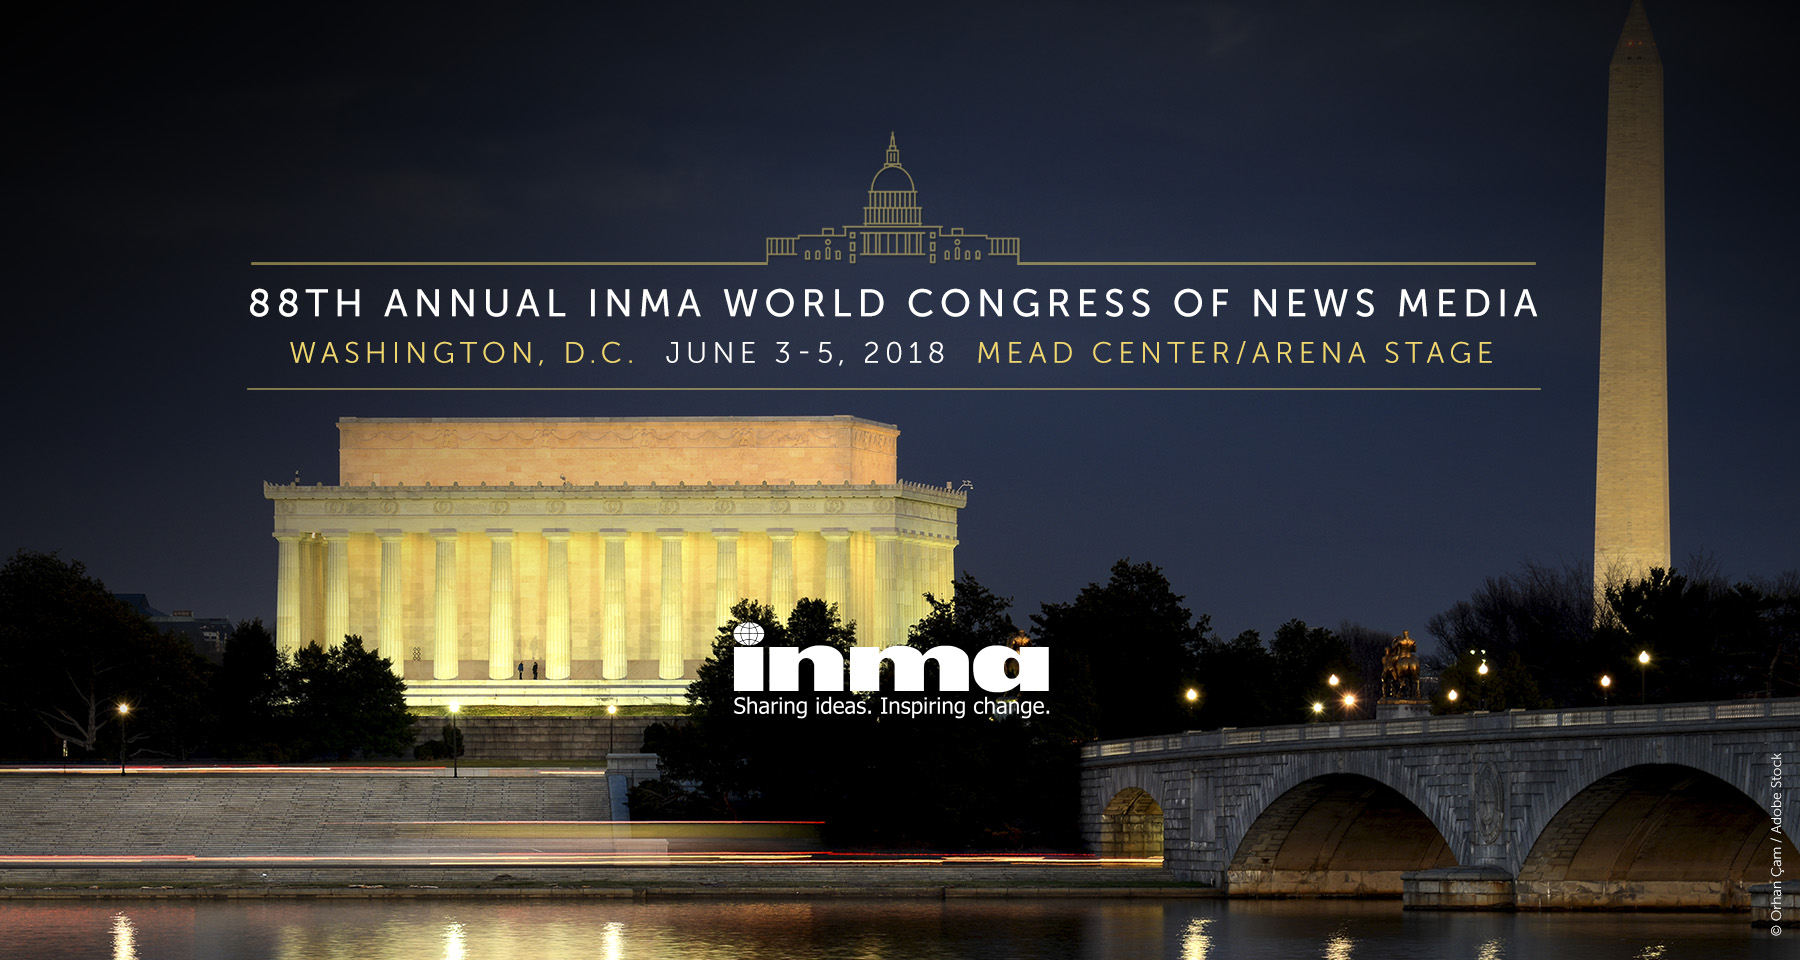 Washington selected as site of 2018 INMA World Congress of News Media